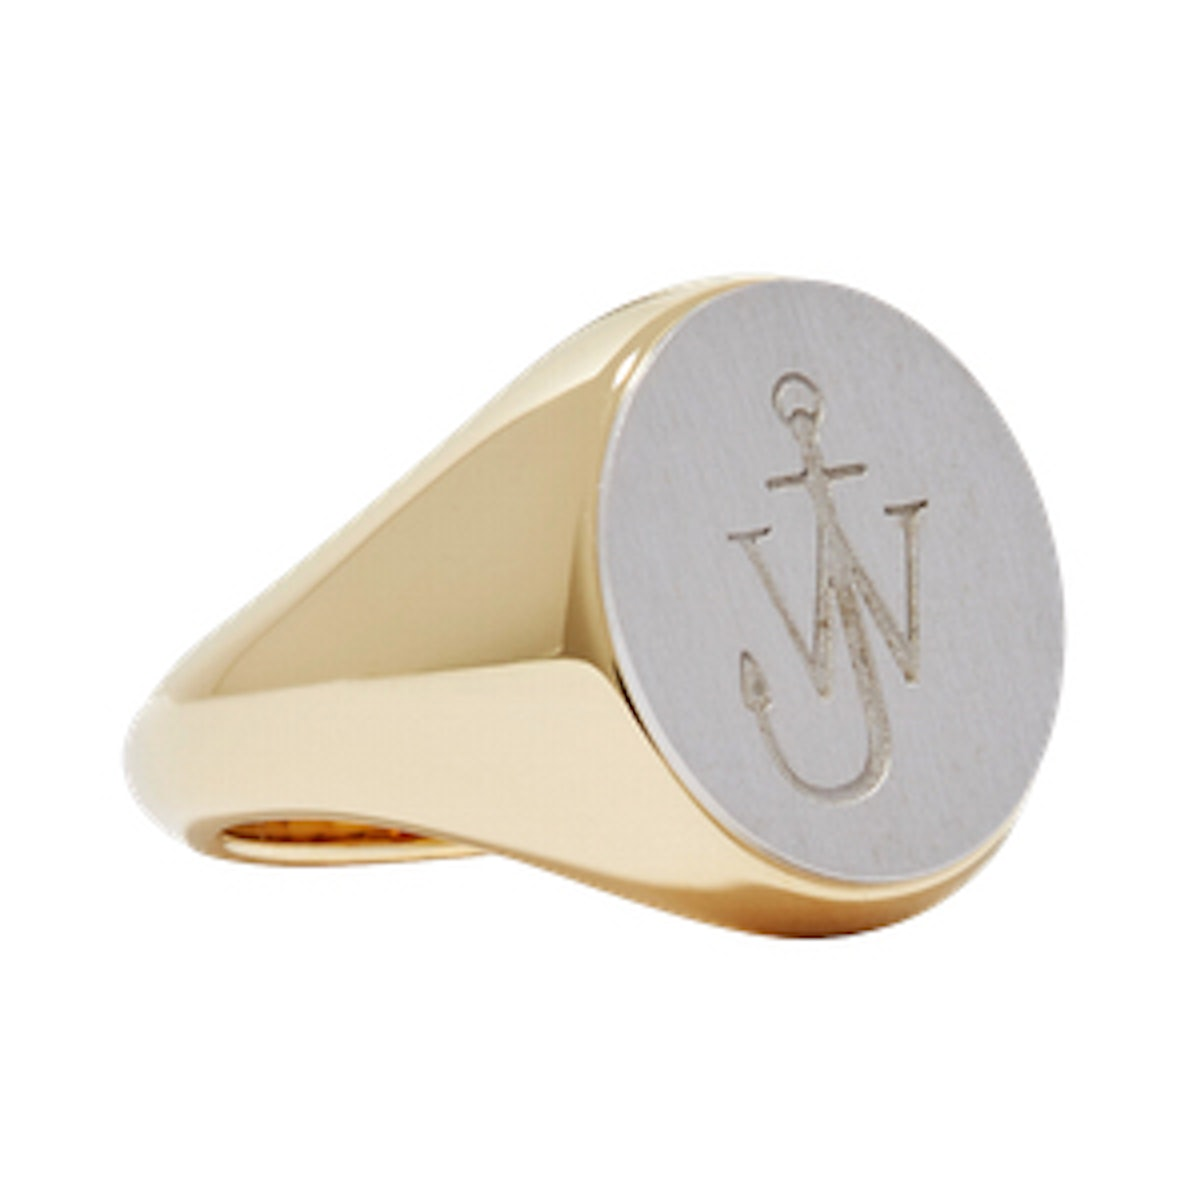 Gold-Plated And Silver-Tone Ring